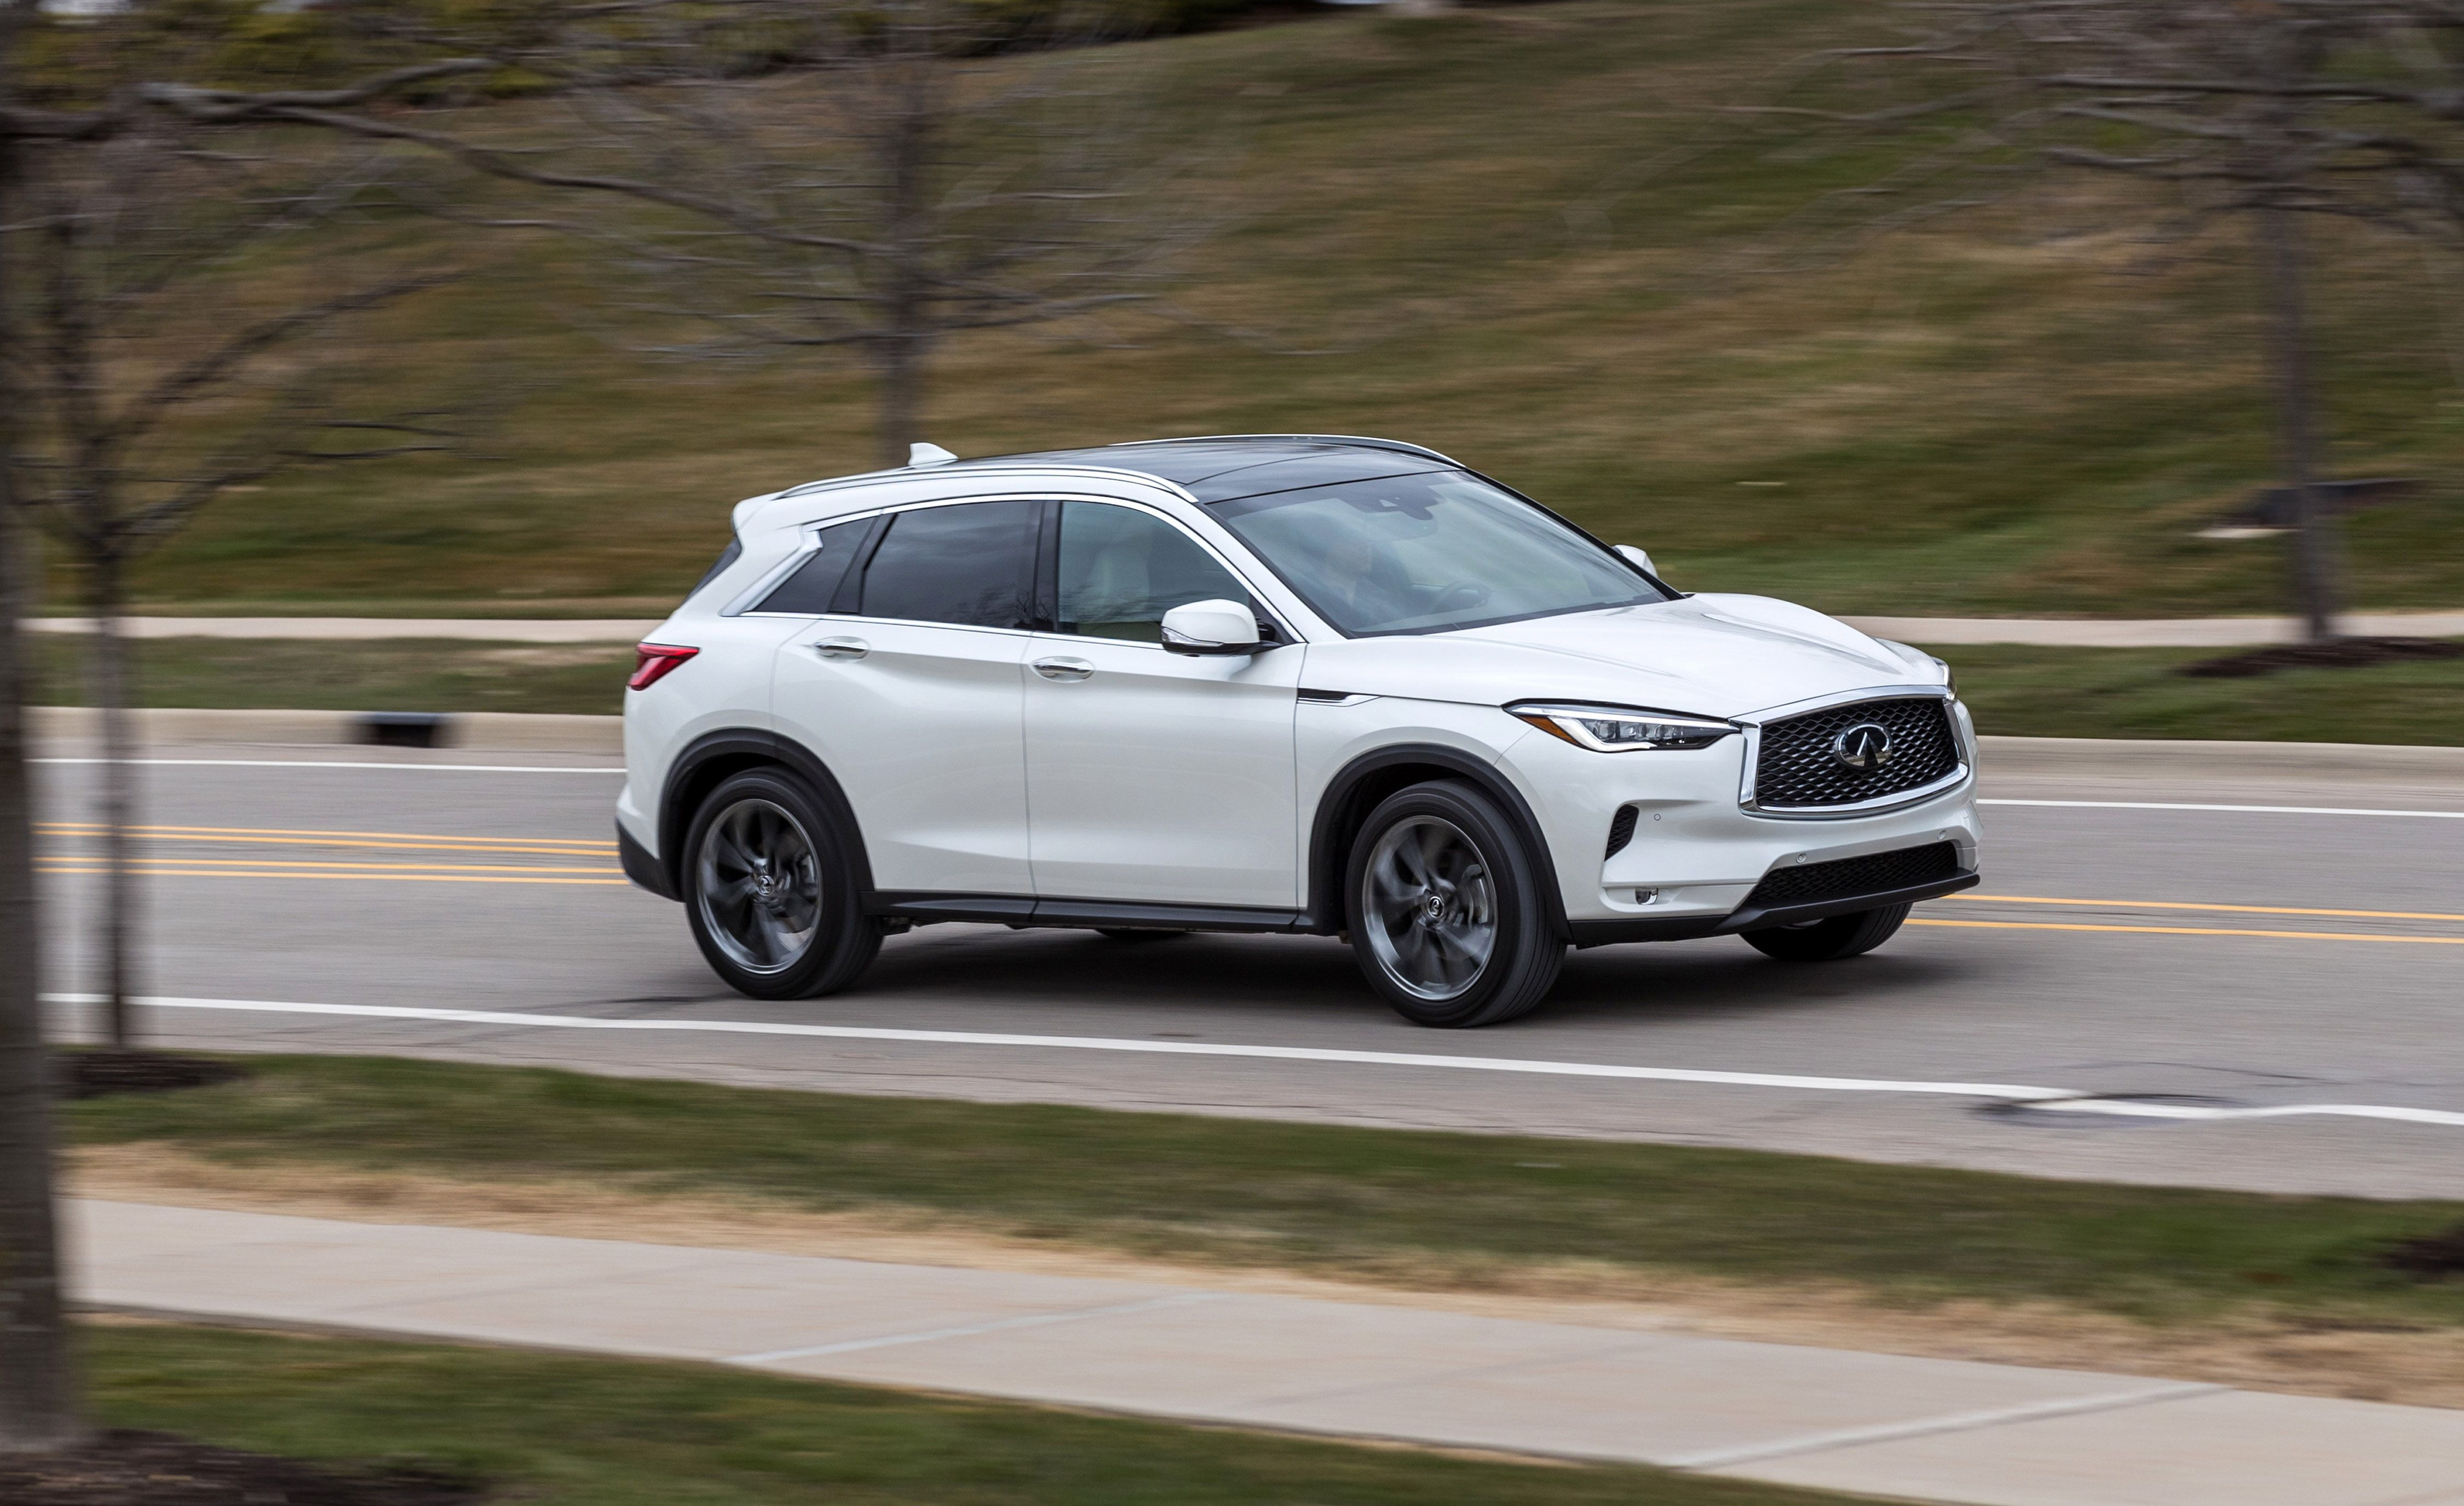 2019 Infiniti Qx50 Reviews Infiniti Qx50 Price Photos And Specs